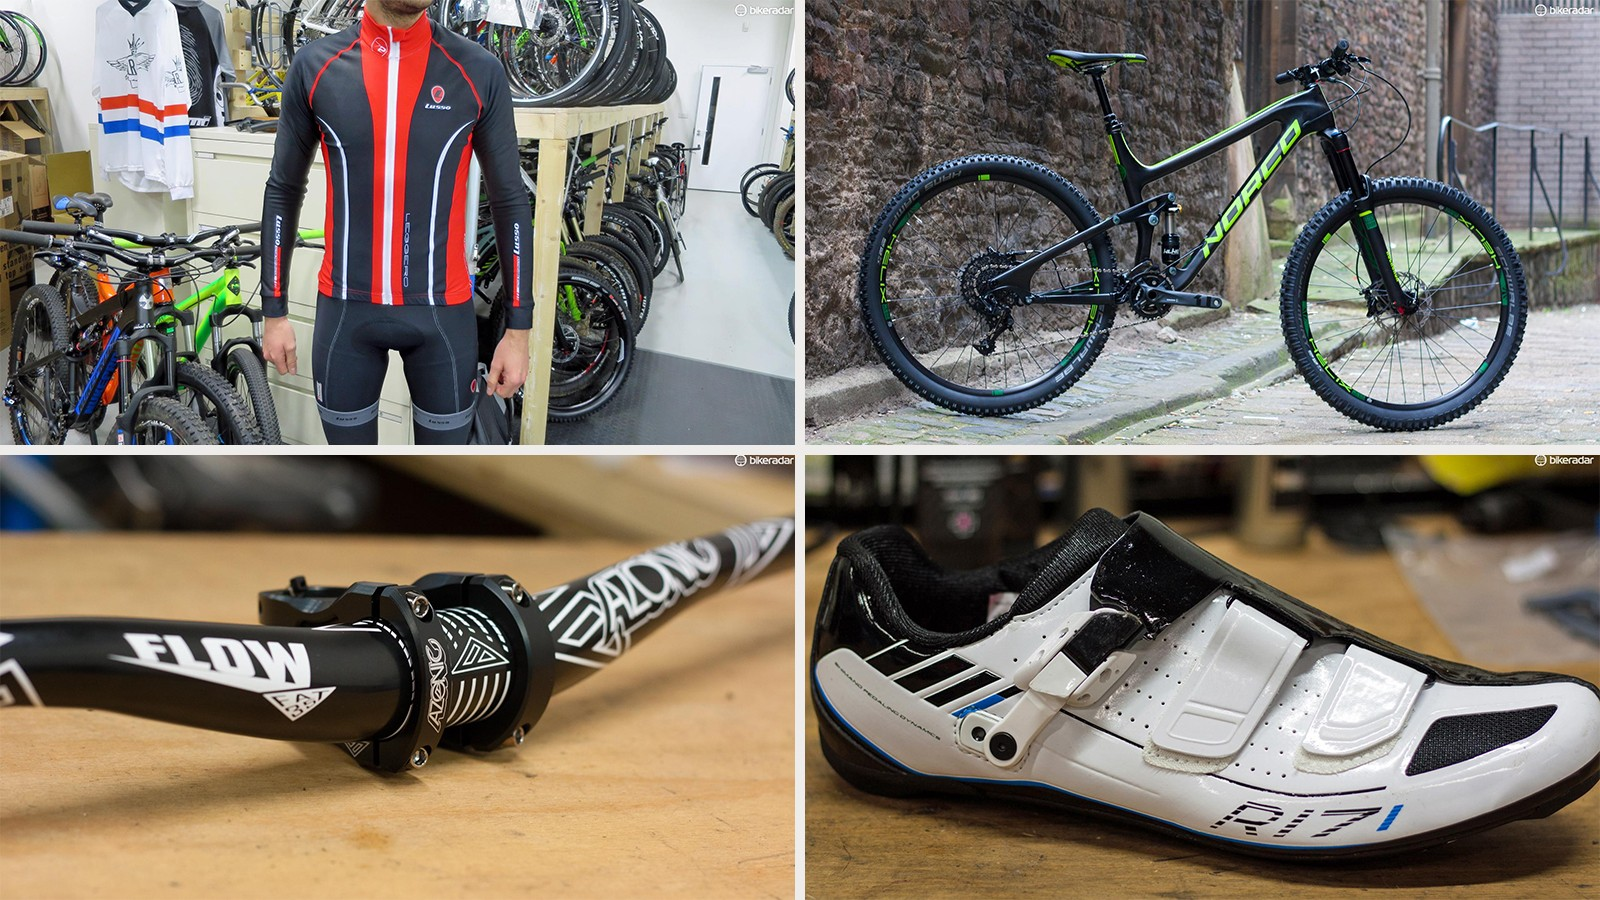 Here's this weeks round-up of new gear